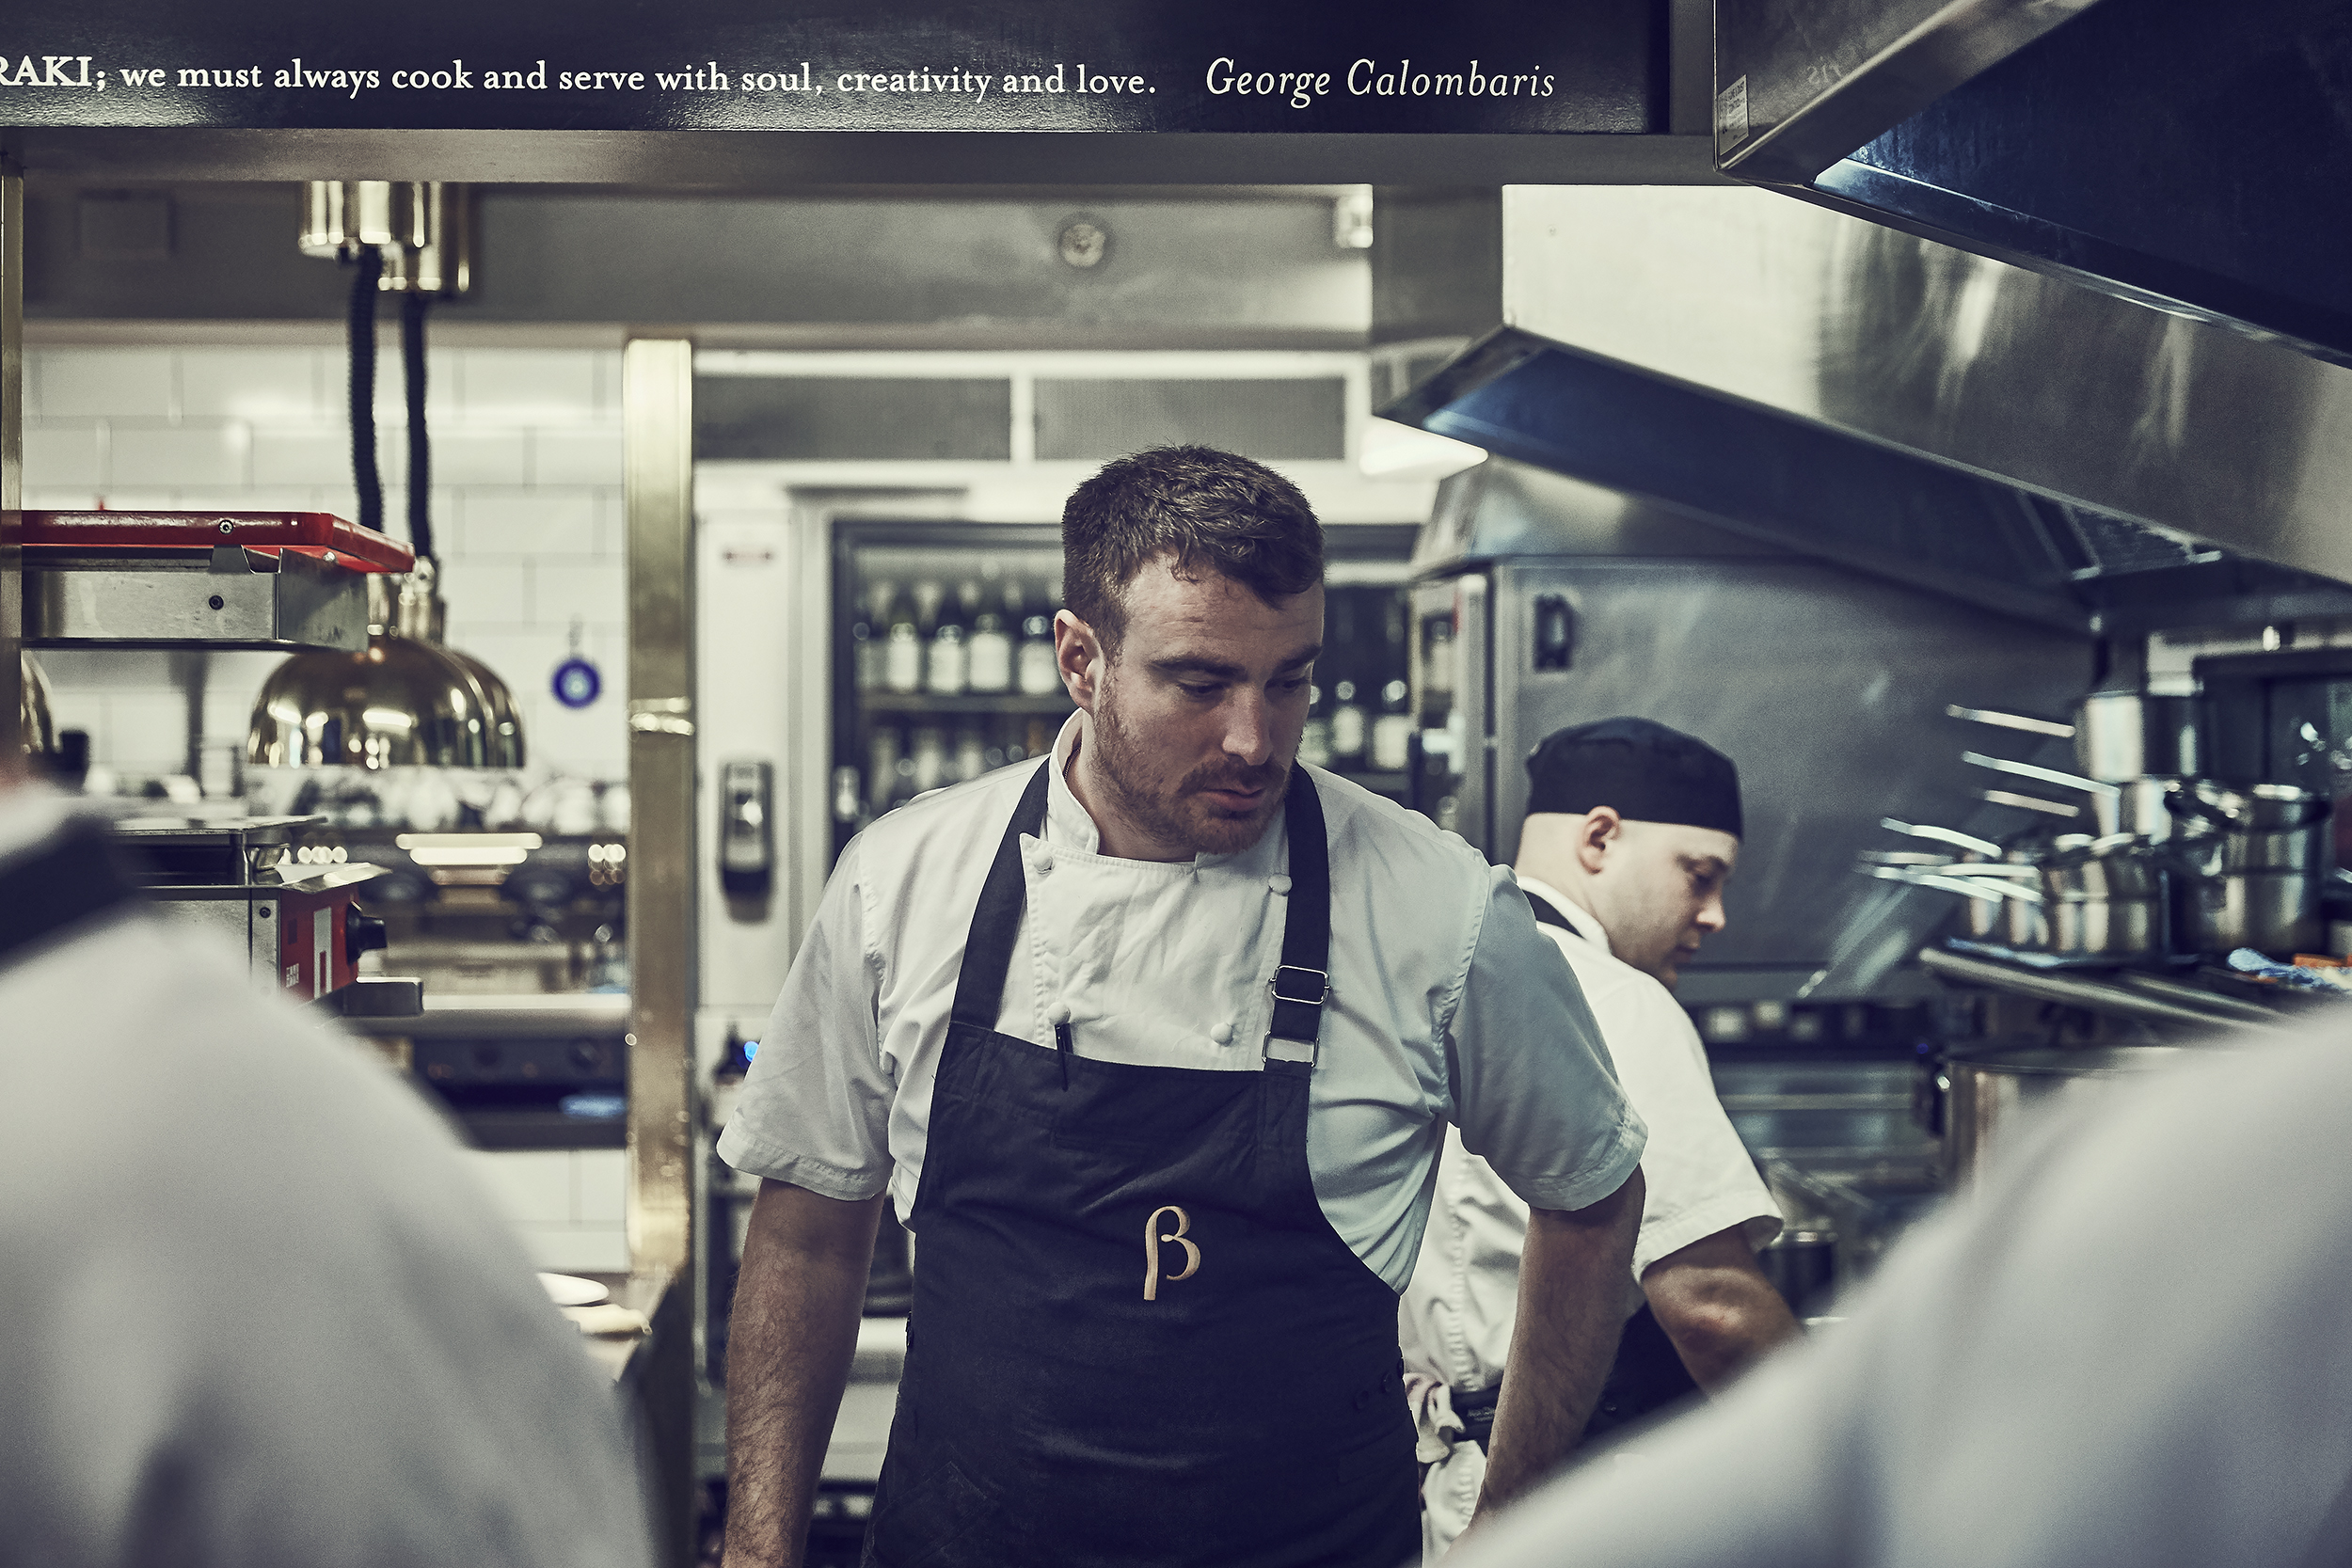 reportage-thom-rigney-professional-photographer-advertising-chefs-kitchens-documentary-melbourne-australia-hospitality-017